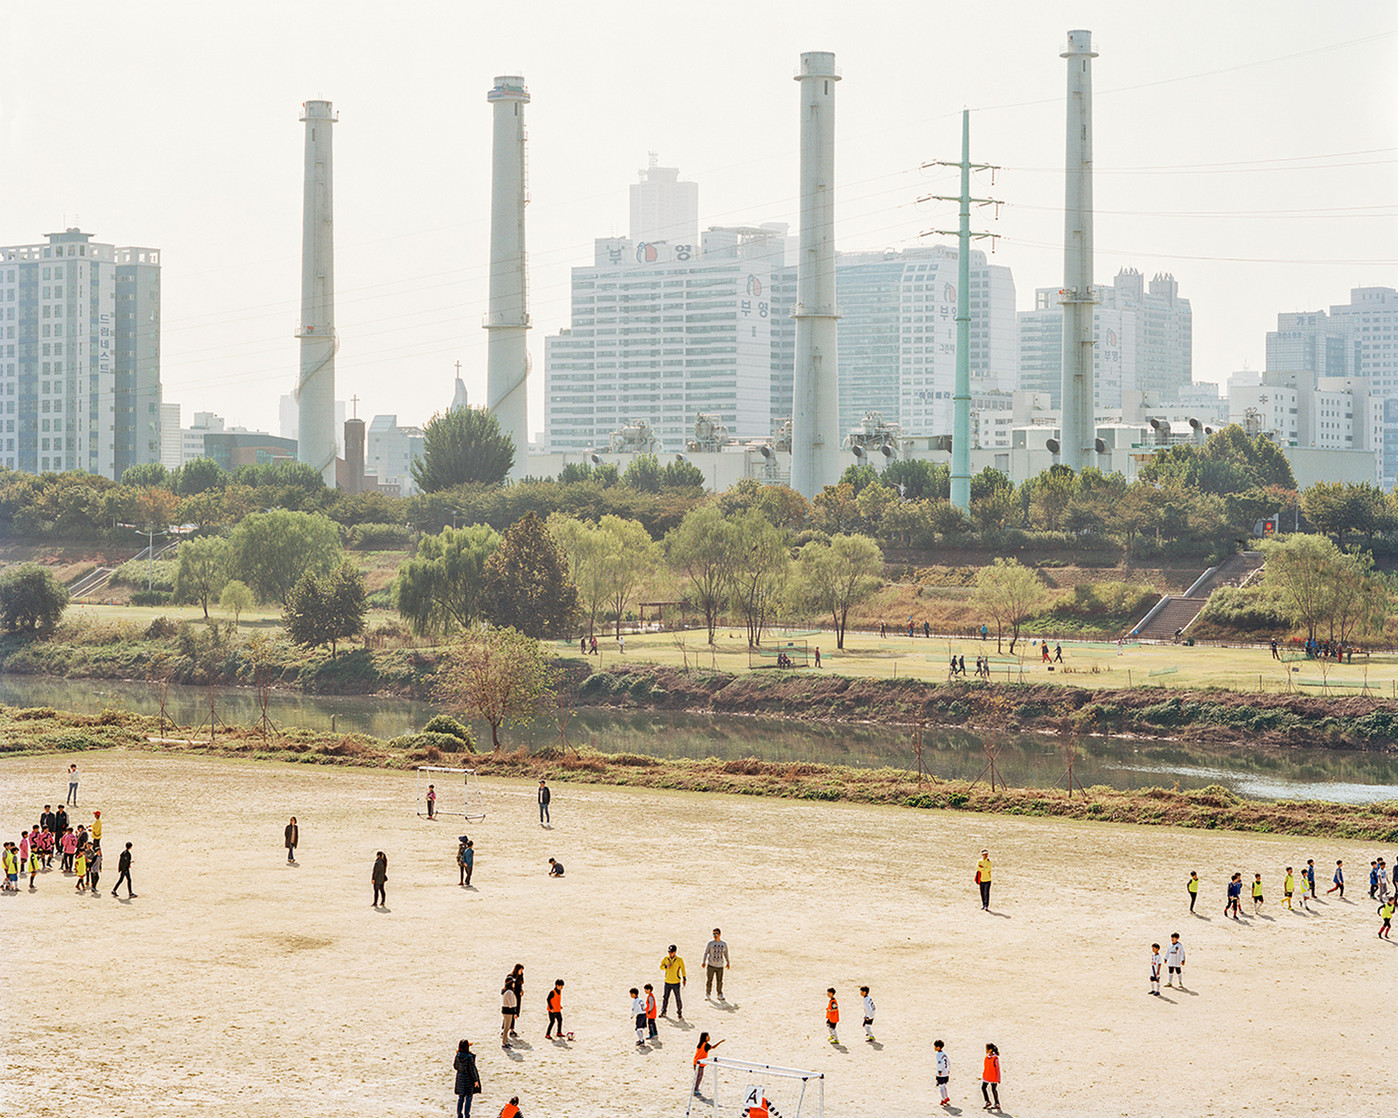 Youngrongyi Park, Seoul, August 2018